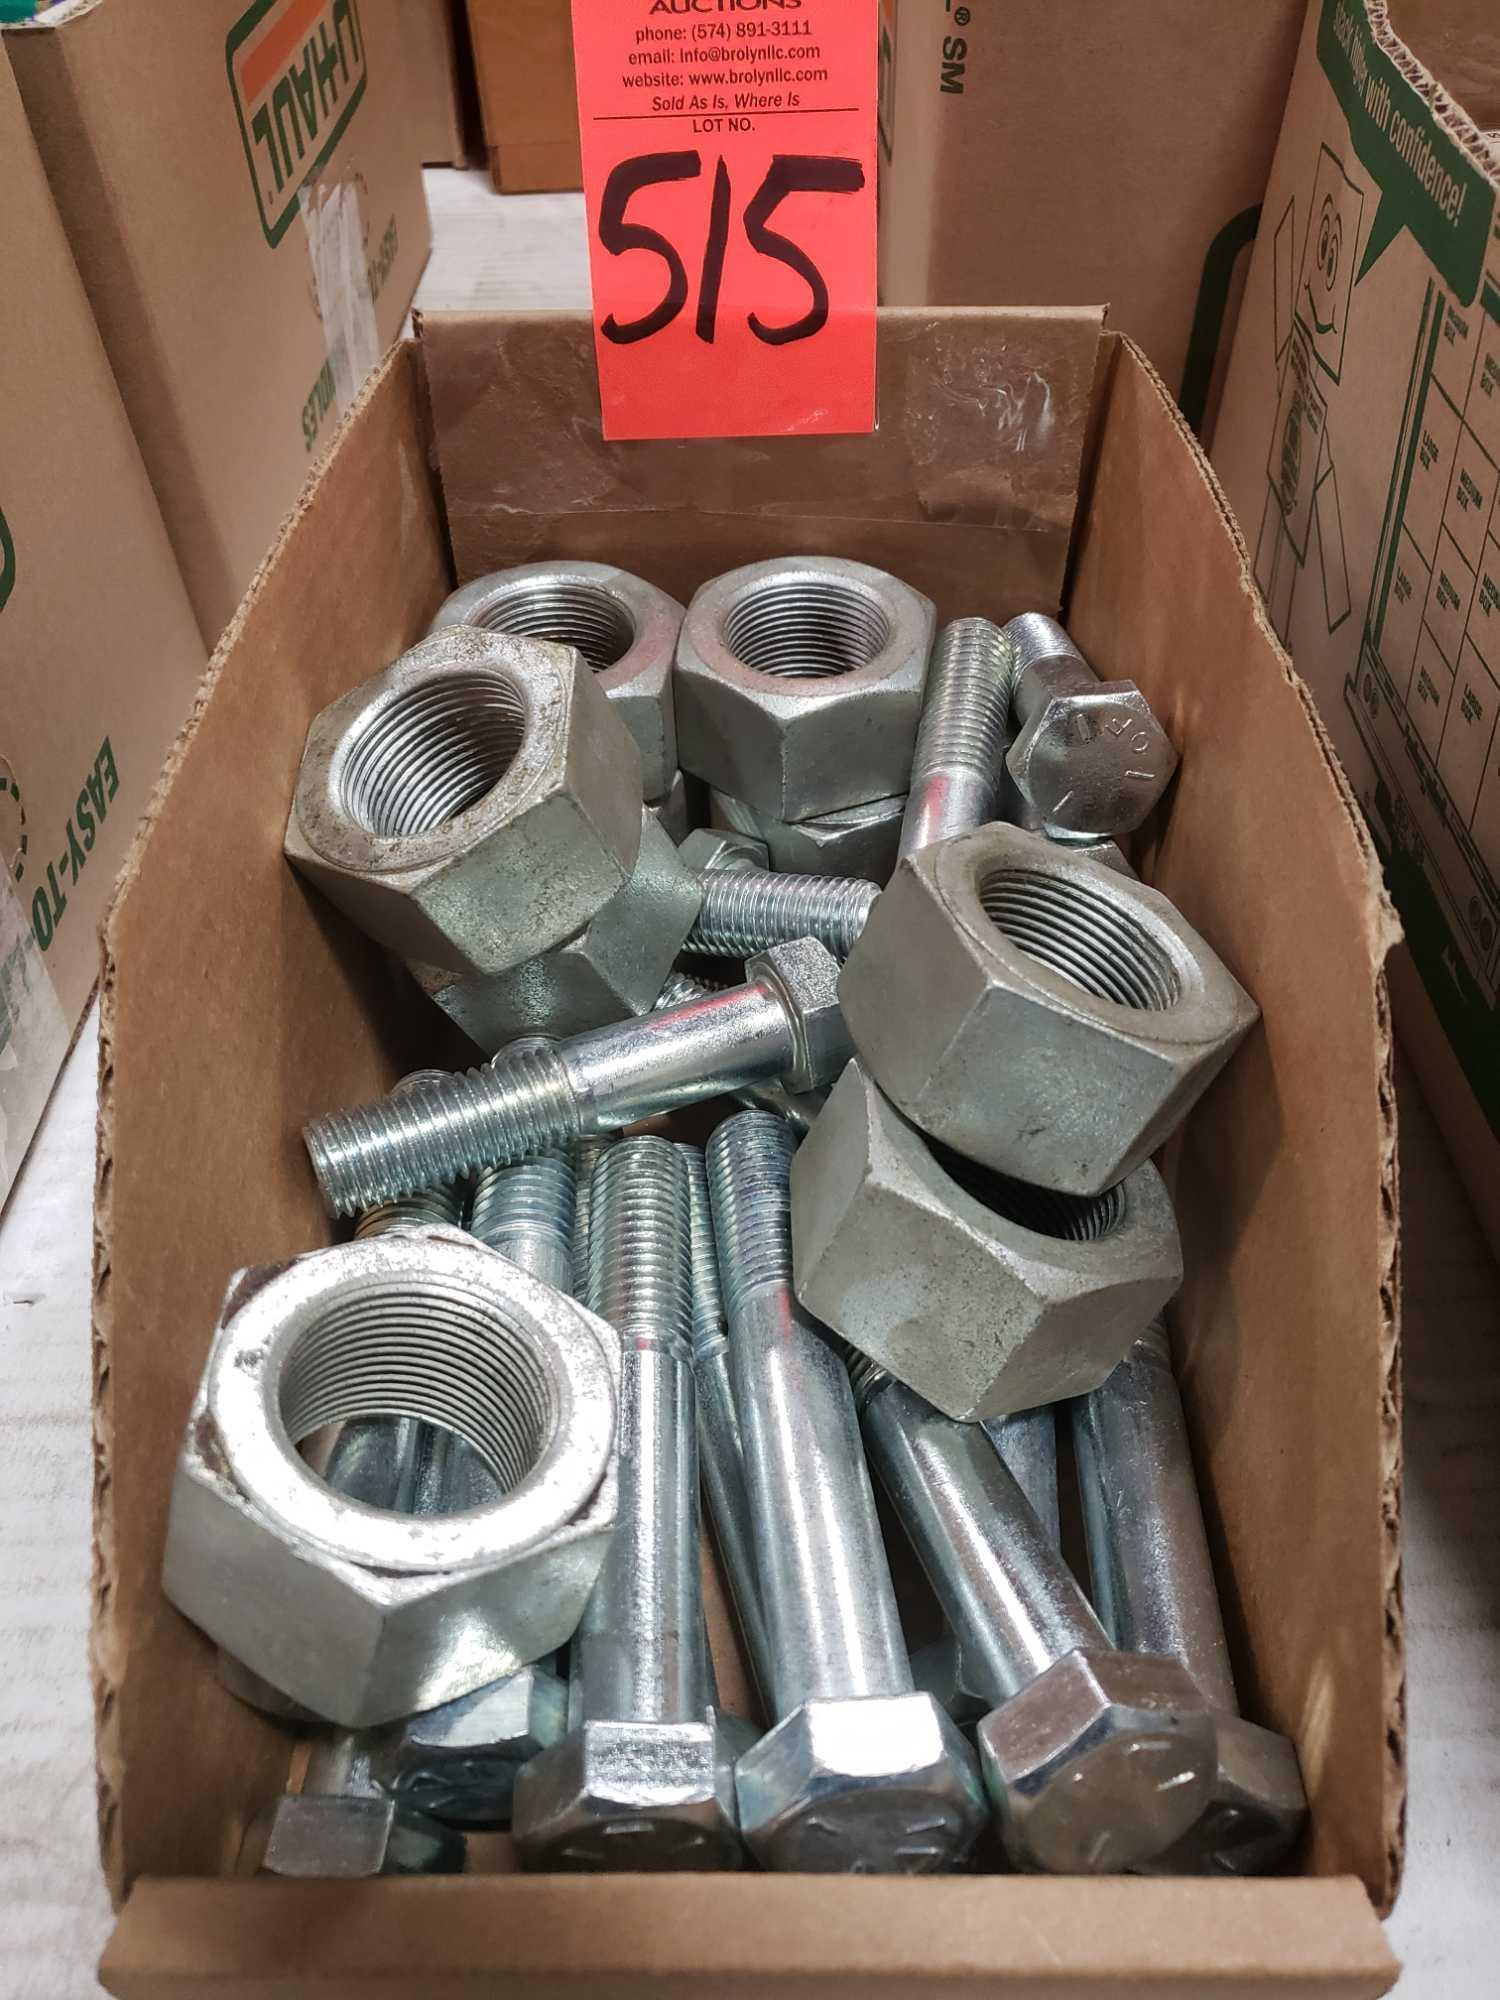 Assorted box new hardware, high grade, nuts, bolts, washers, etc. New in box.